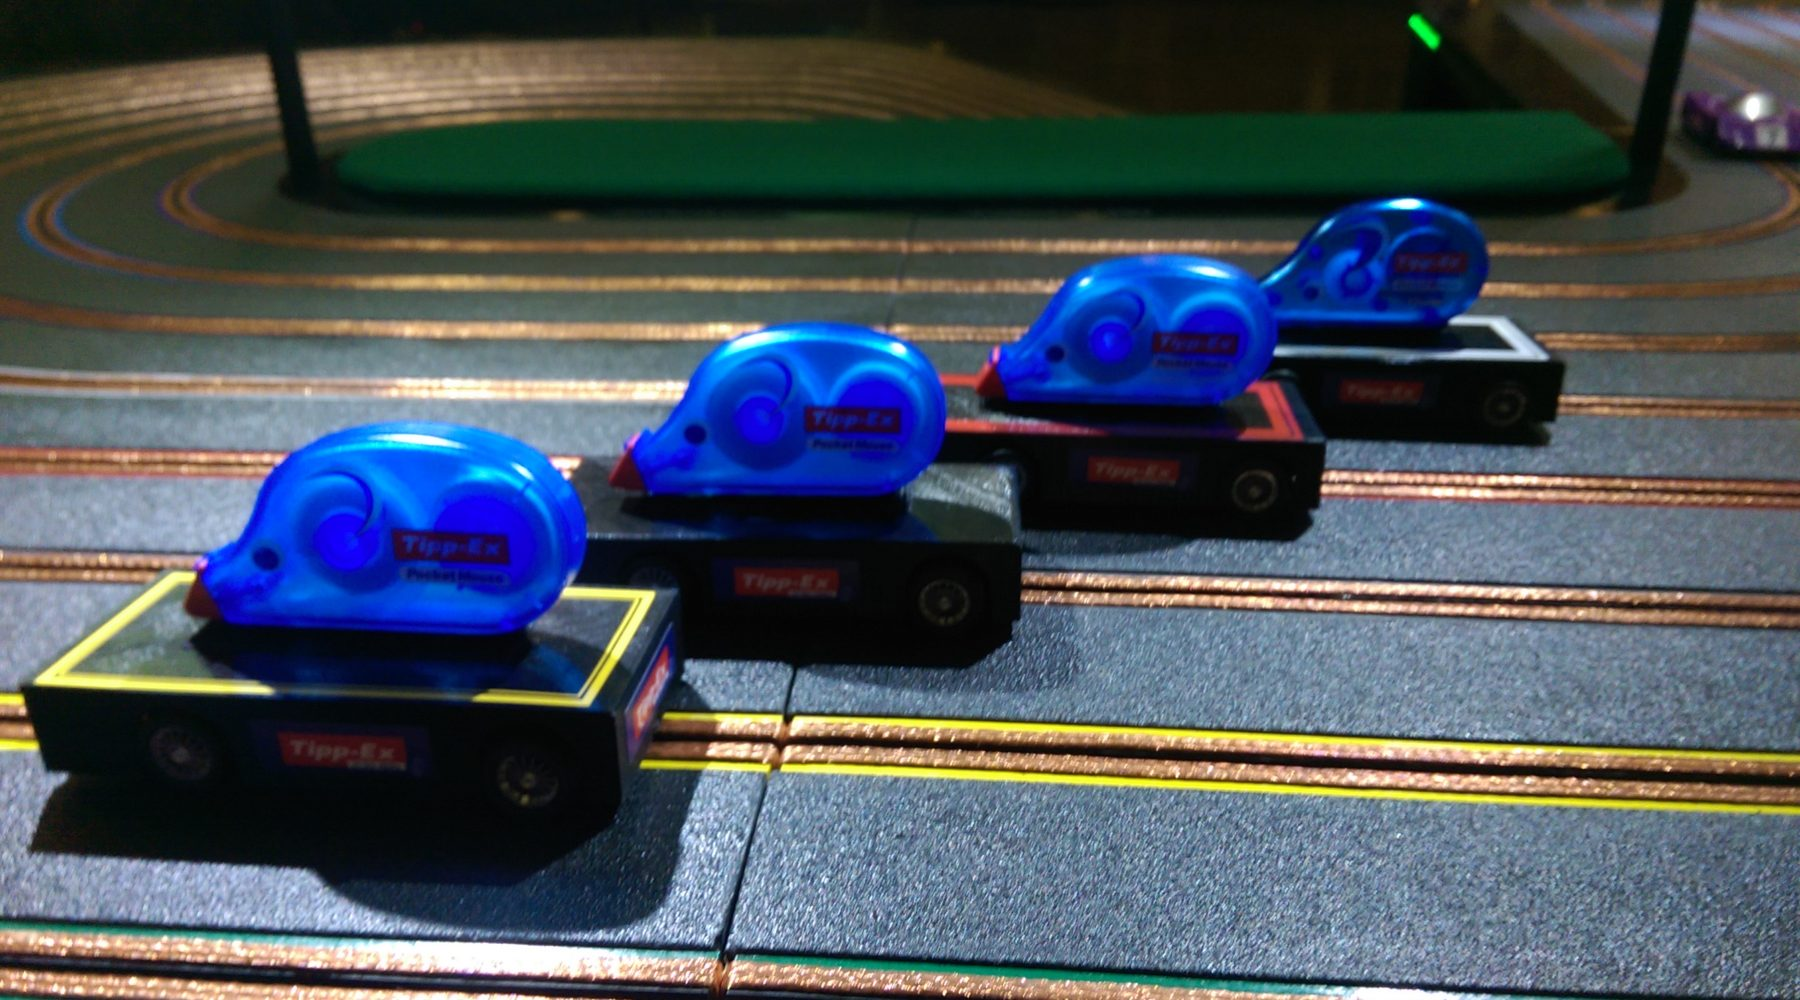 miniracing.com Giant Scalextric 8 lane track with custom tipex mouse cars